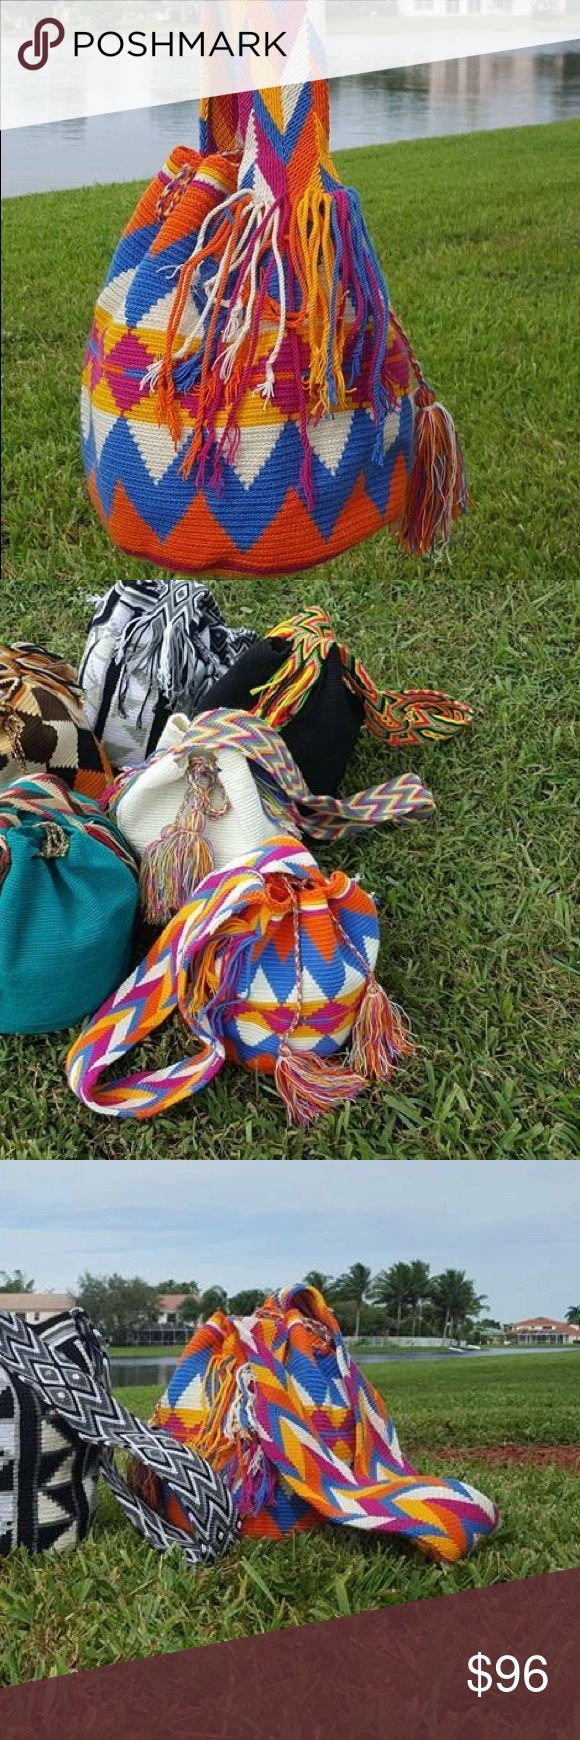 Summer colored wayuu bag Authentic new luxury mochila bag. ️handmade by Indian wayuu community of Colombia. Each bag is one of a kind and made with absolute skills and dedication. Each bag take around 20 days to make. Shakira, Katie perry and Monaco princes use wayuu bags Bags Shoulder Bags